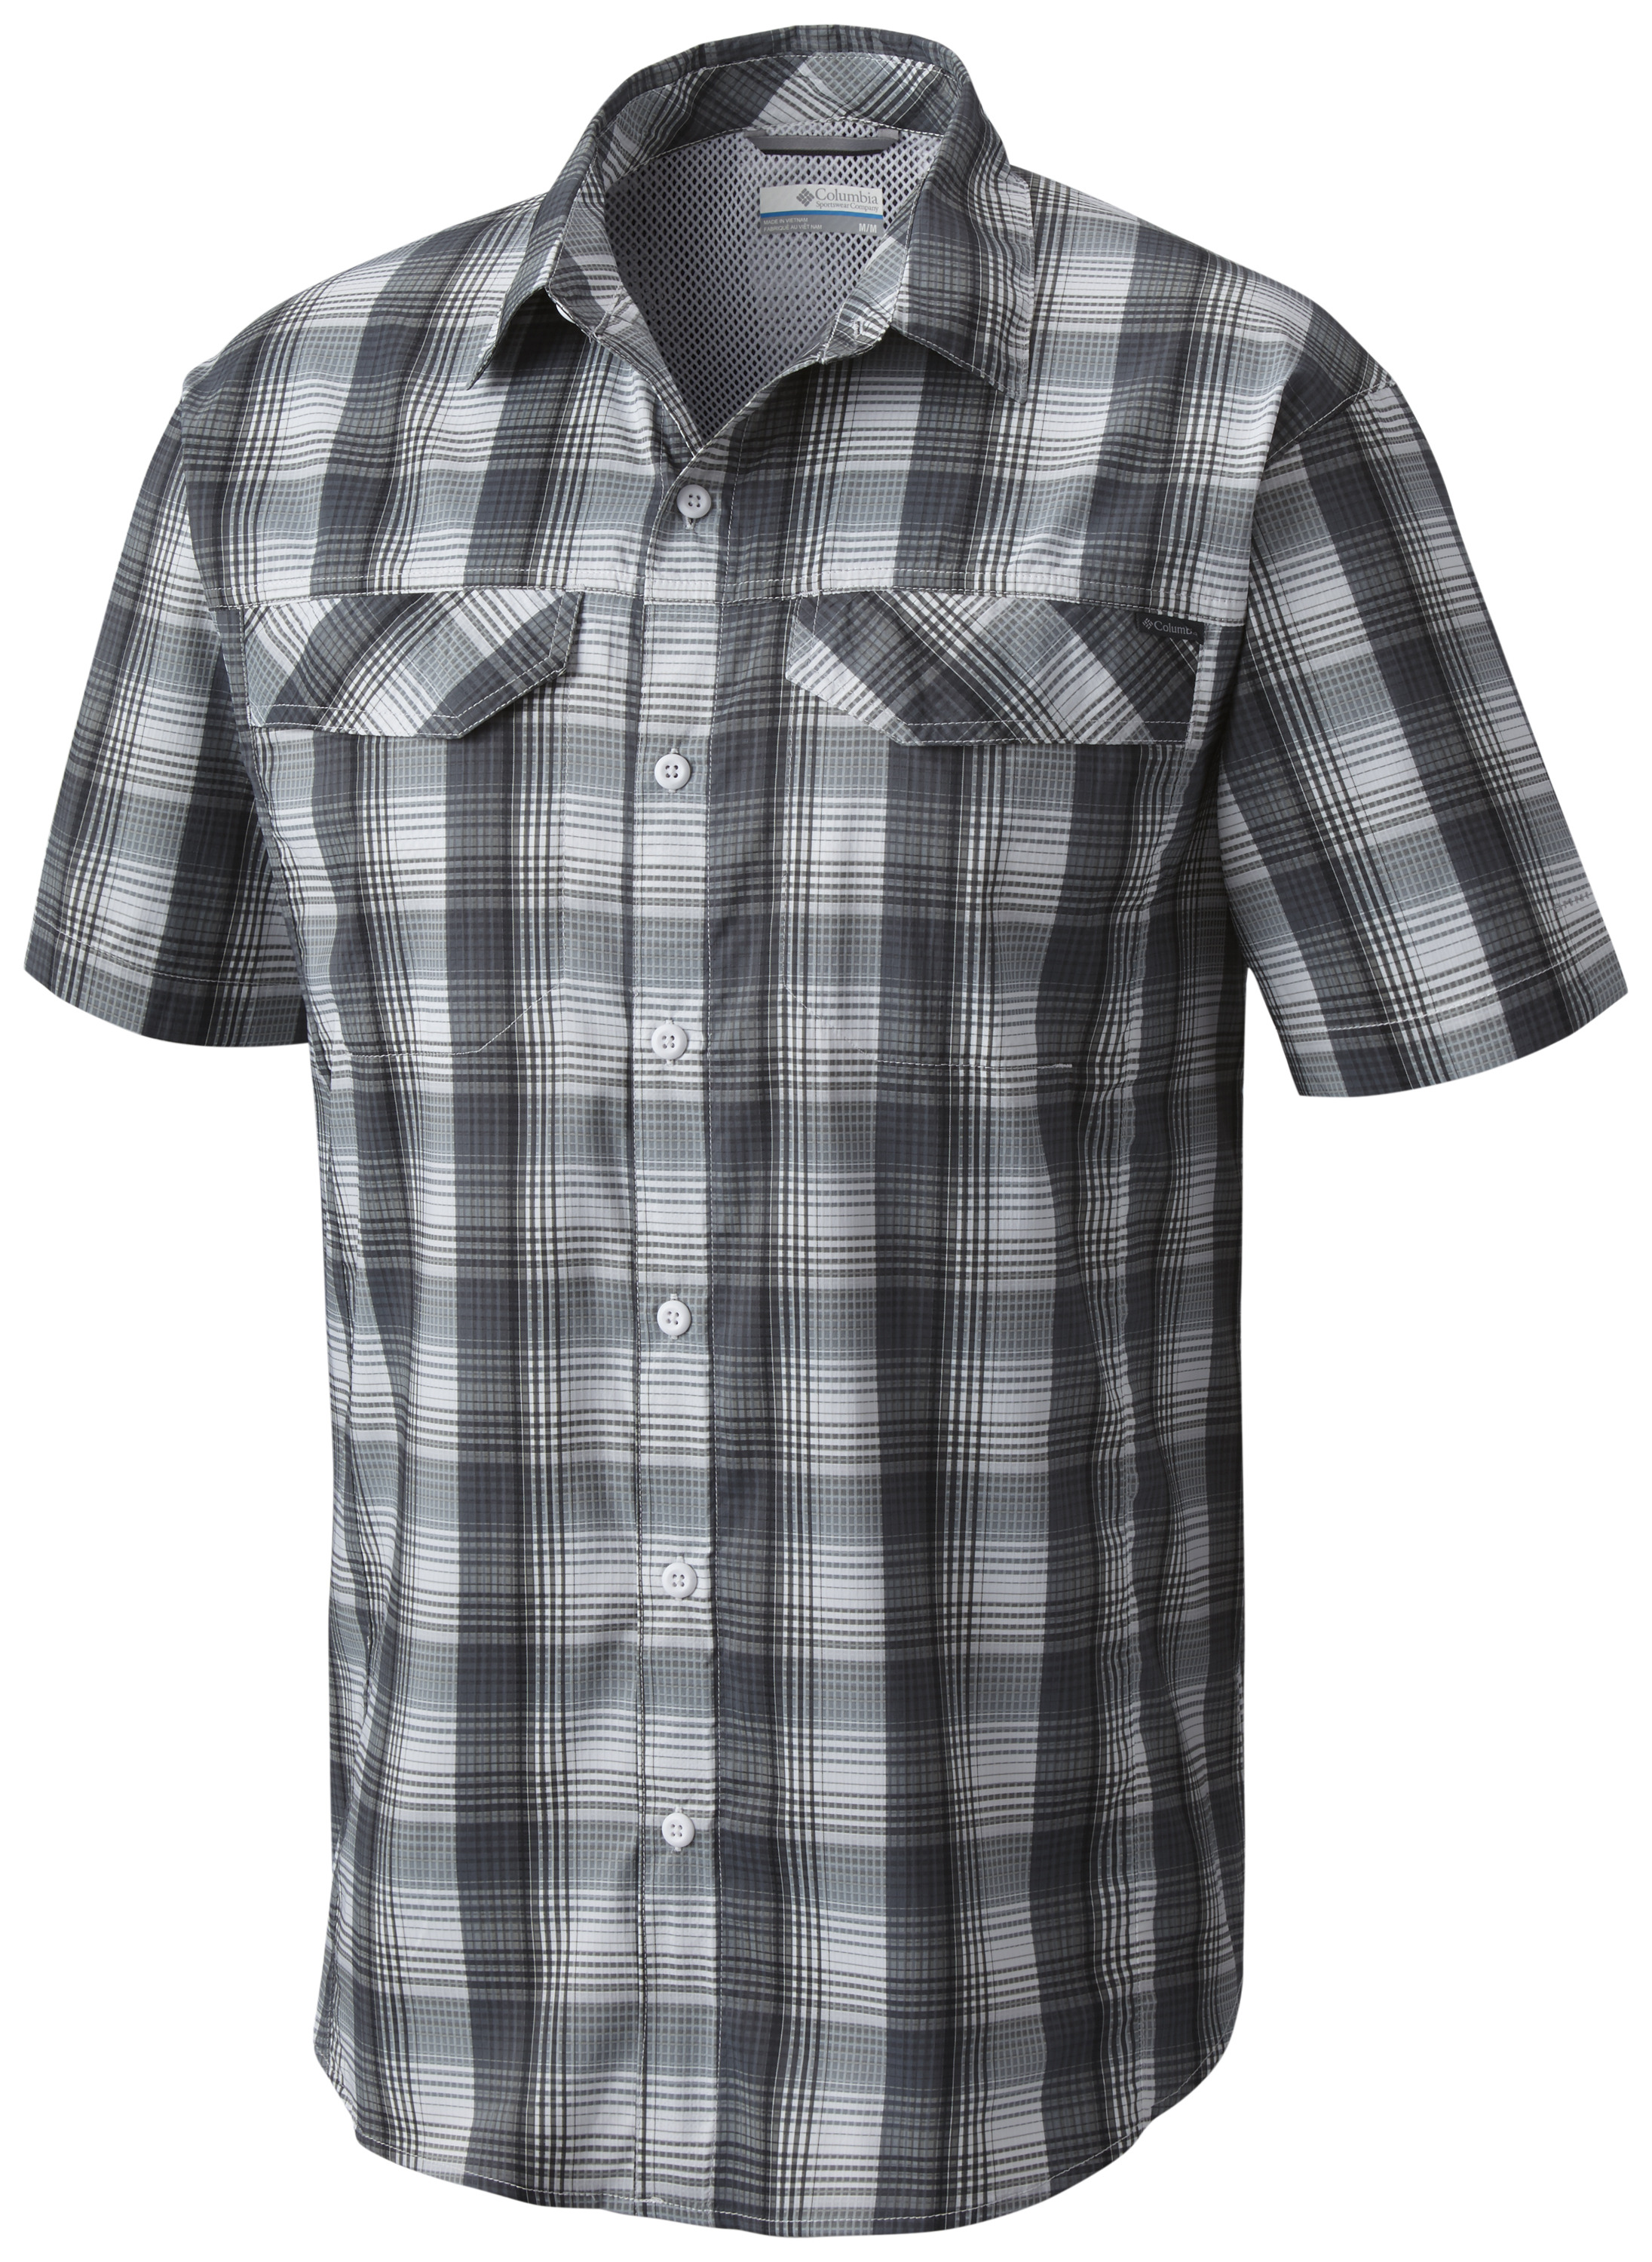 ef86847b1fc Columbia Silver Ridge Lite Plaid Short Sleeve - Mens, Up to 49% Off —  CampSaver